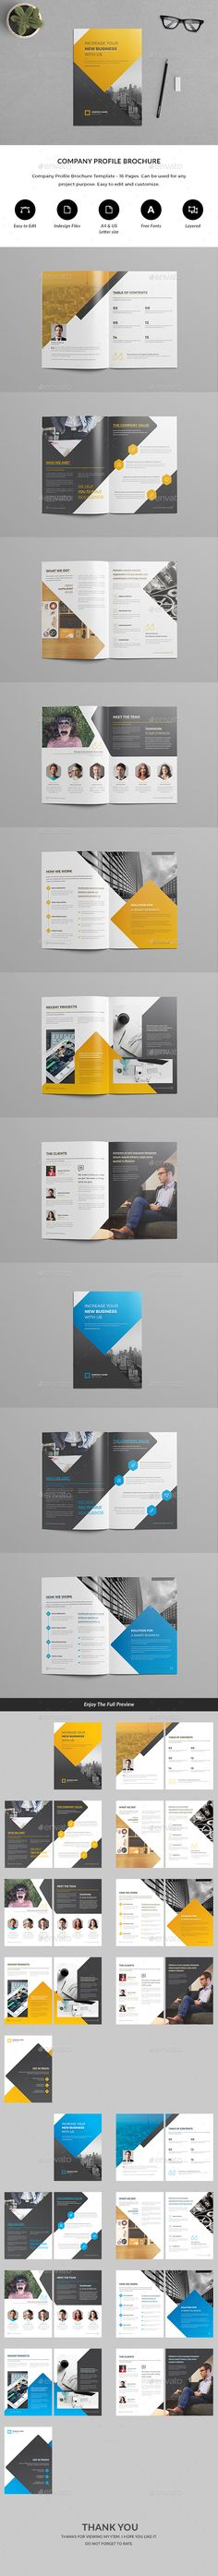 Company Profile Brochure Template - #Brochures Print #Templates Download here: https://graphicriver.net/item/company-profile-brochure-template/20133875?ref=alena994